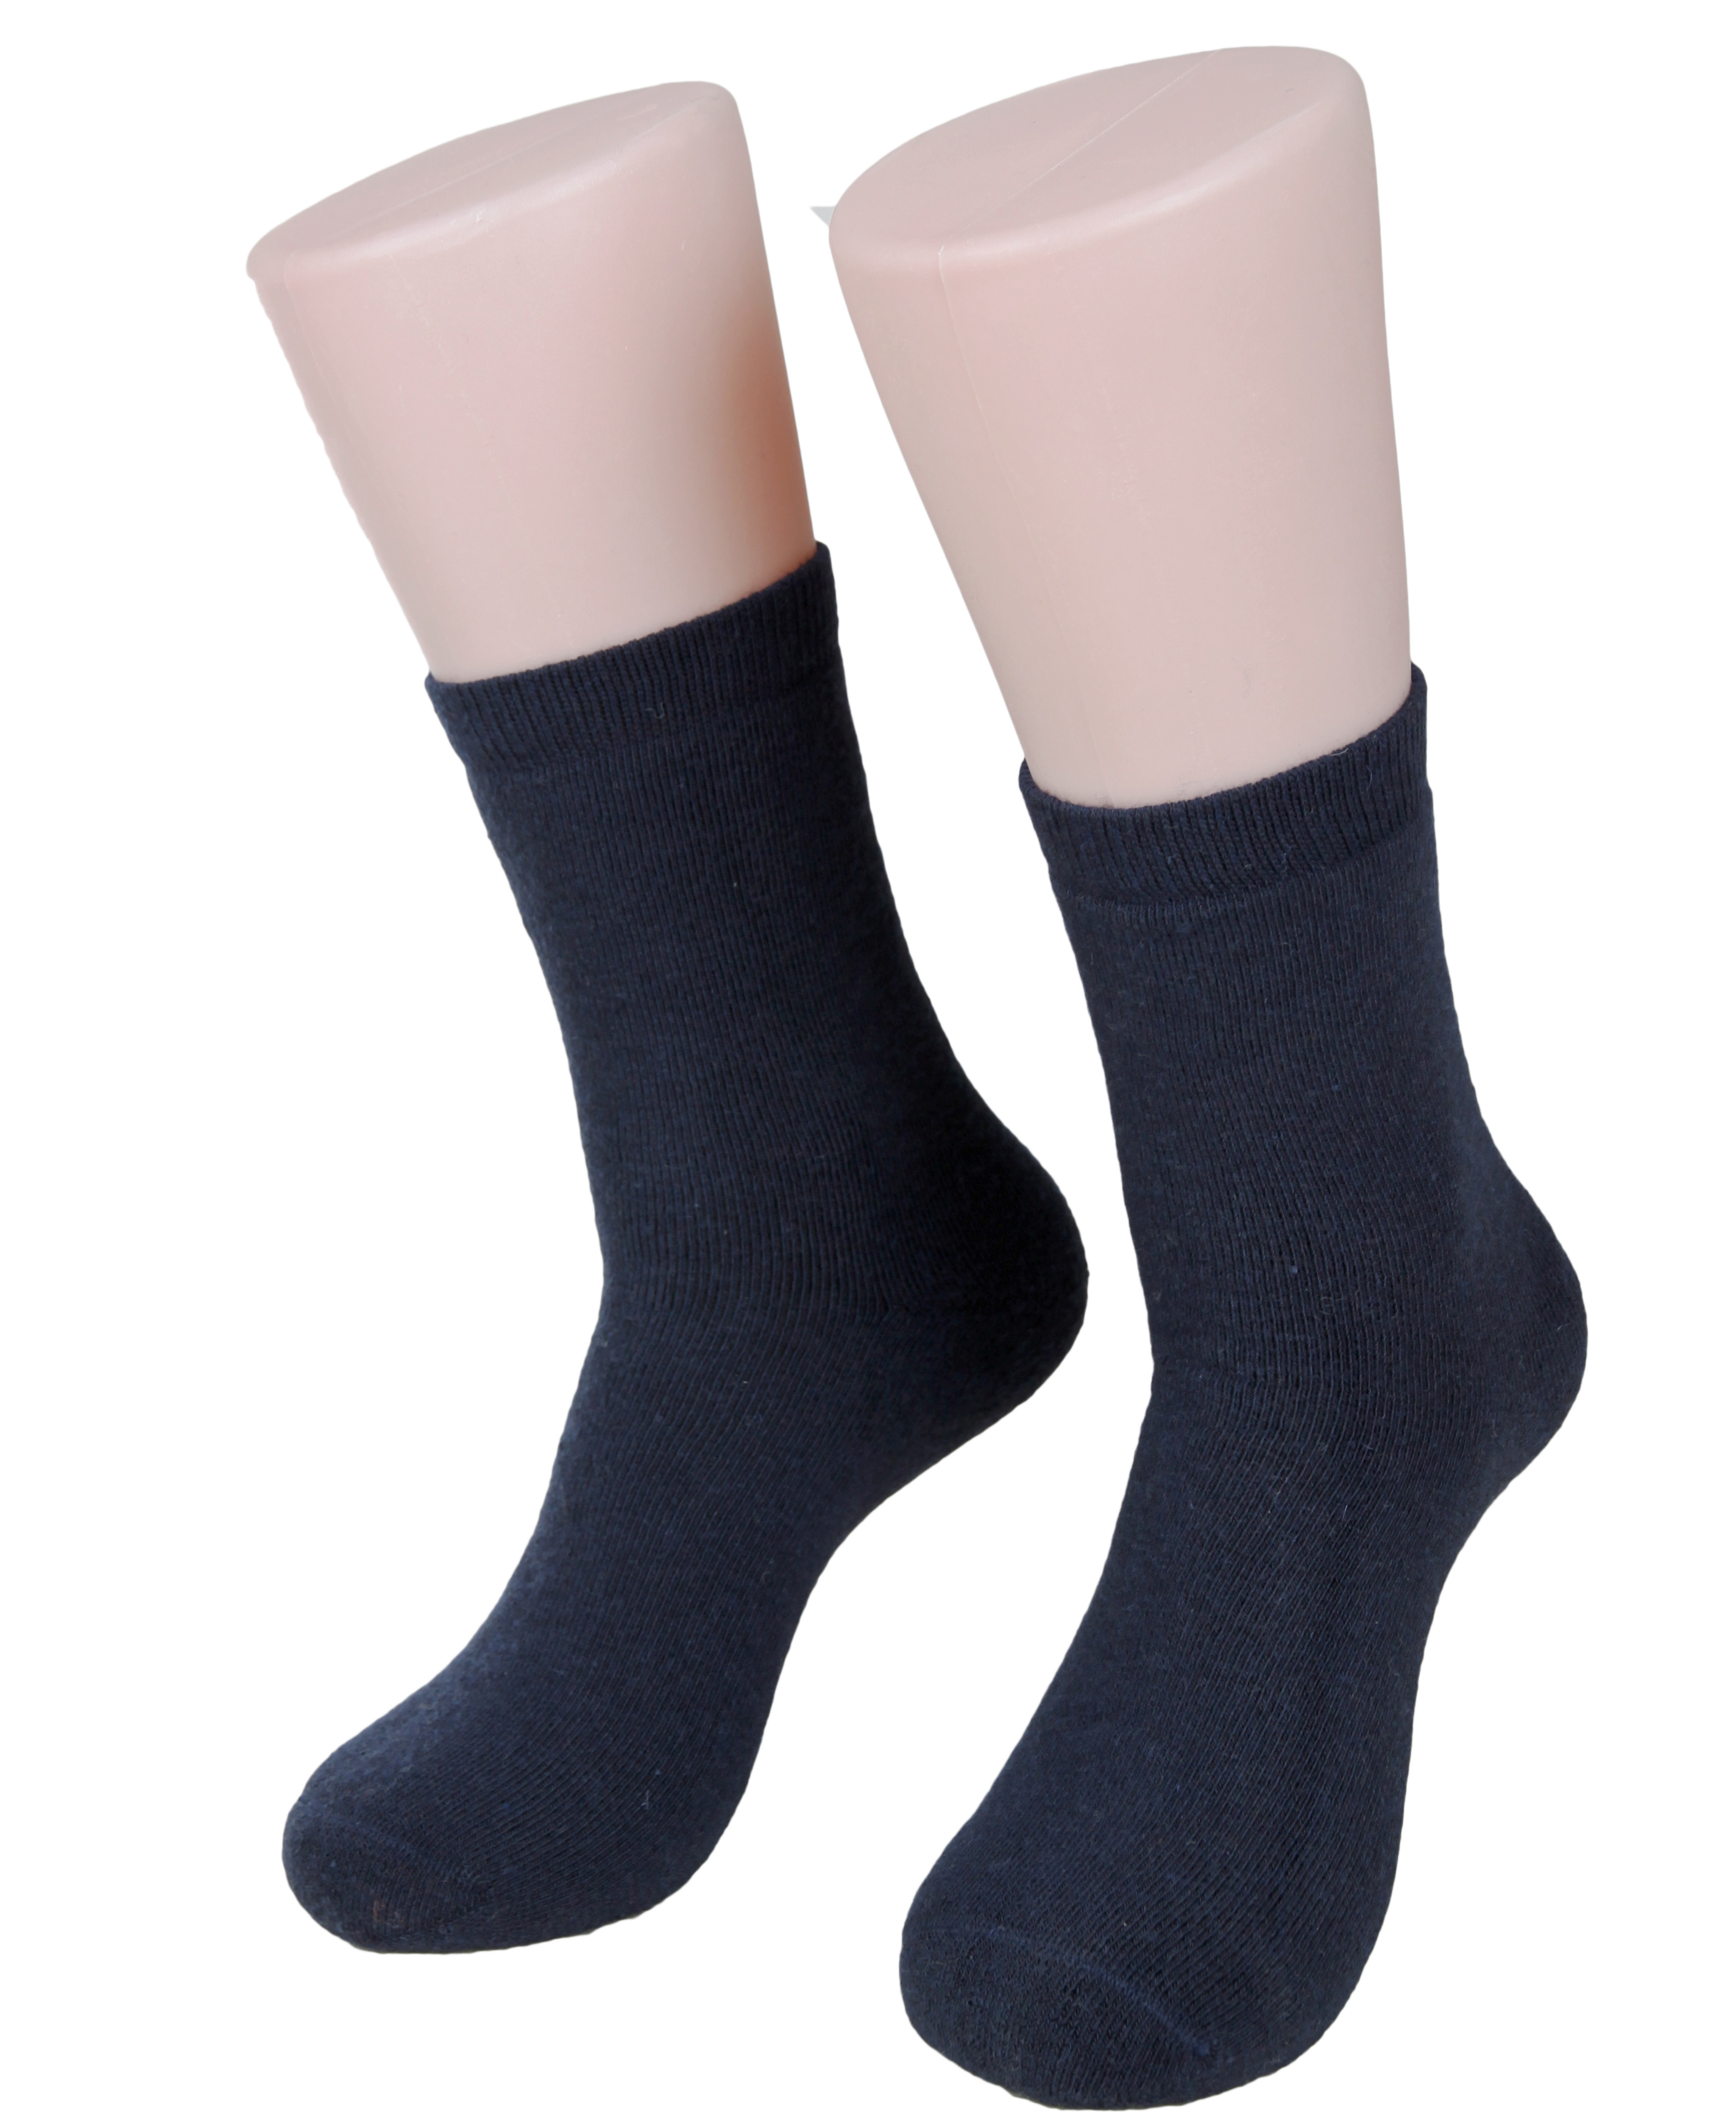 Lian LifeStyle Women's 4 Pairs Thick Wool Blend Crew Socks Boot Socks Size 8-11(Assorted)